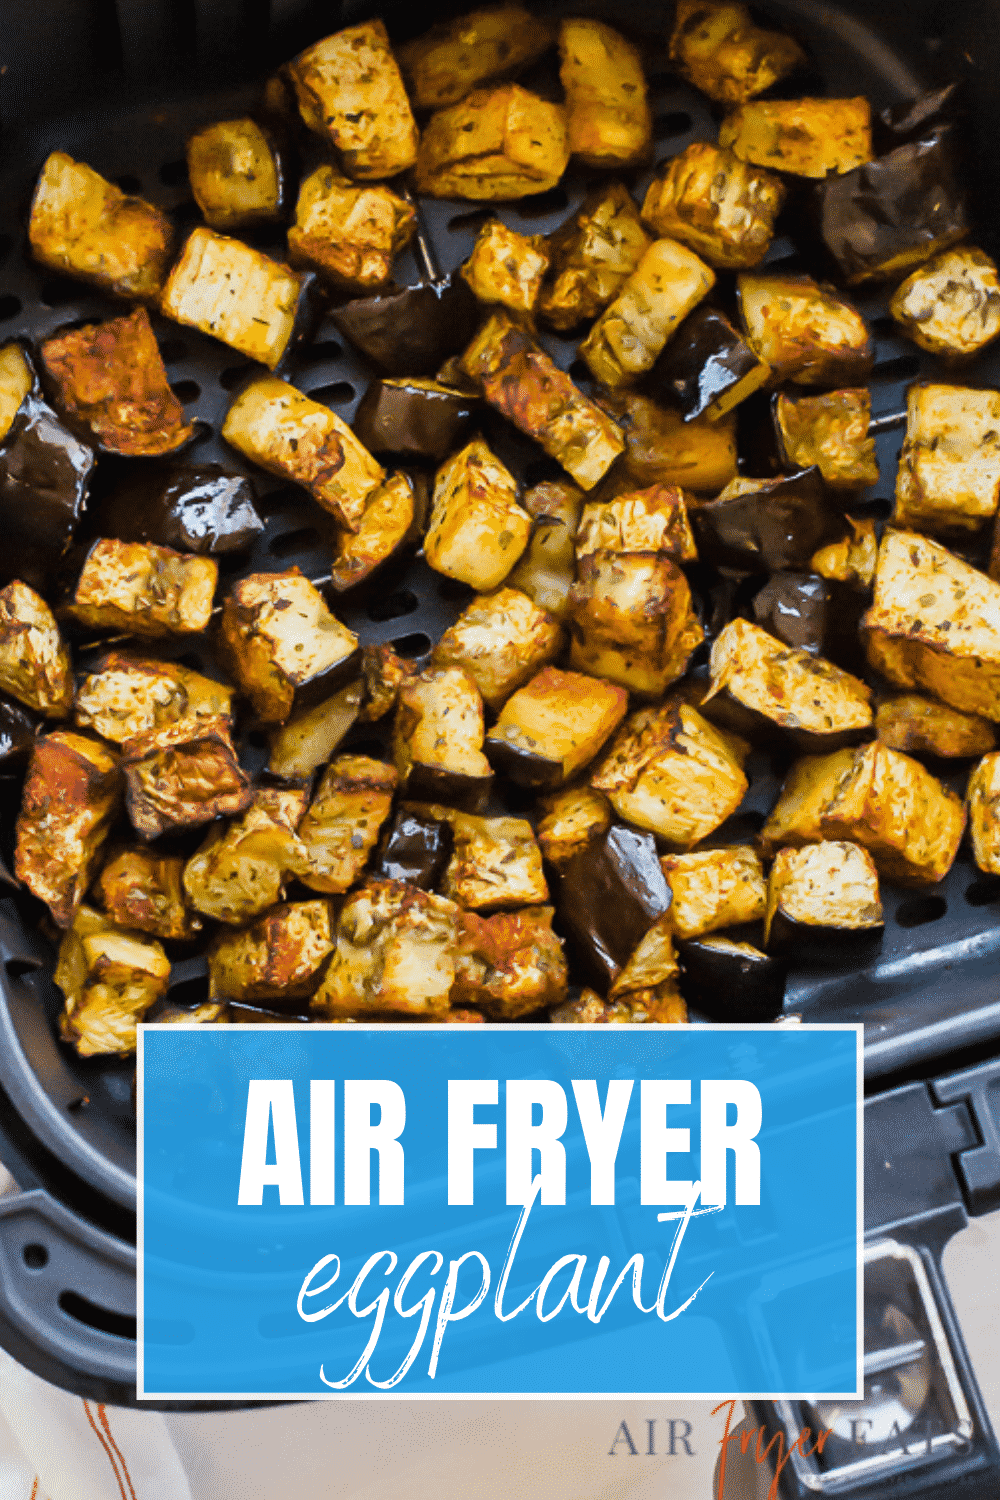 air fryer eggplant text over a black air fryer basket with eggplant inside